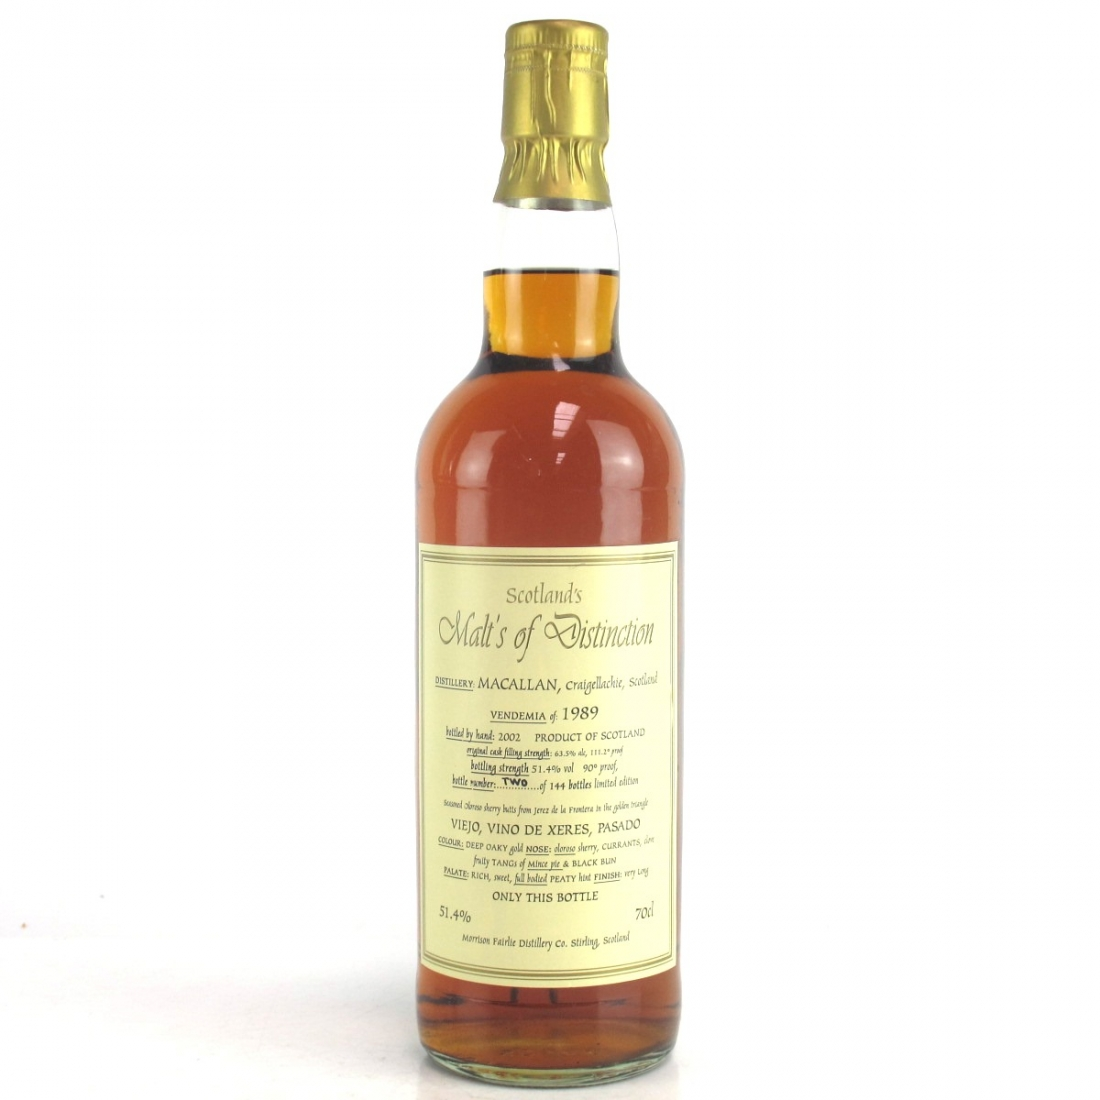 Macallan 1989 Malts of Distinction